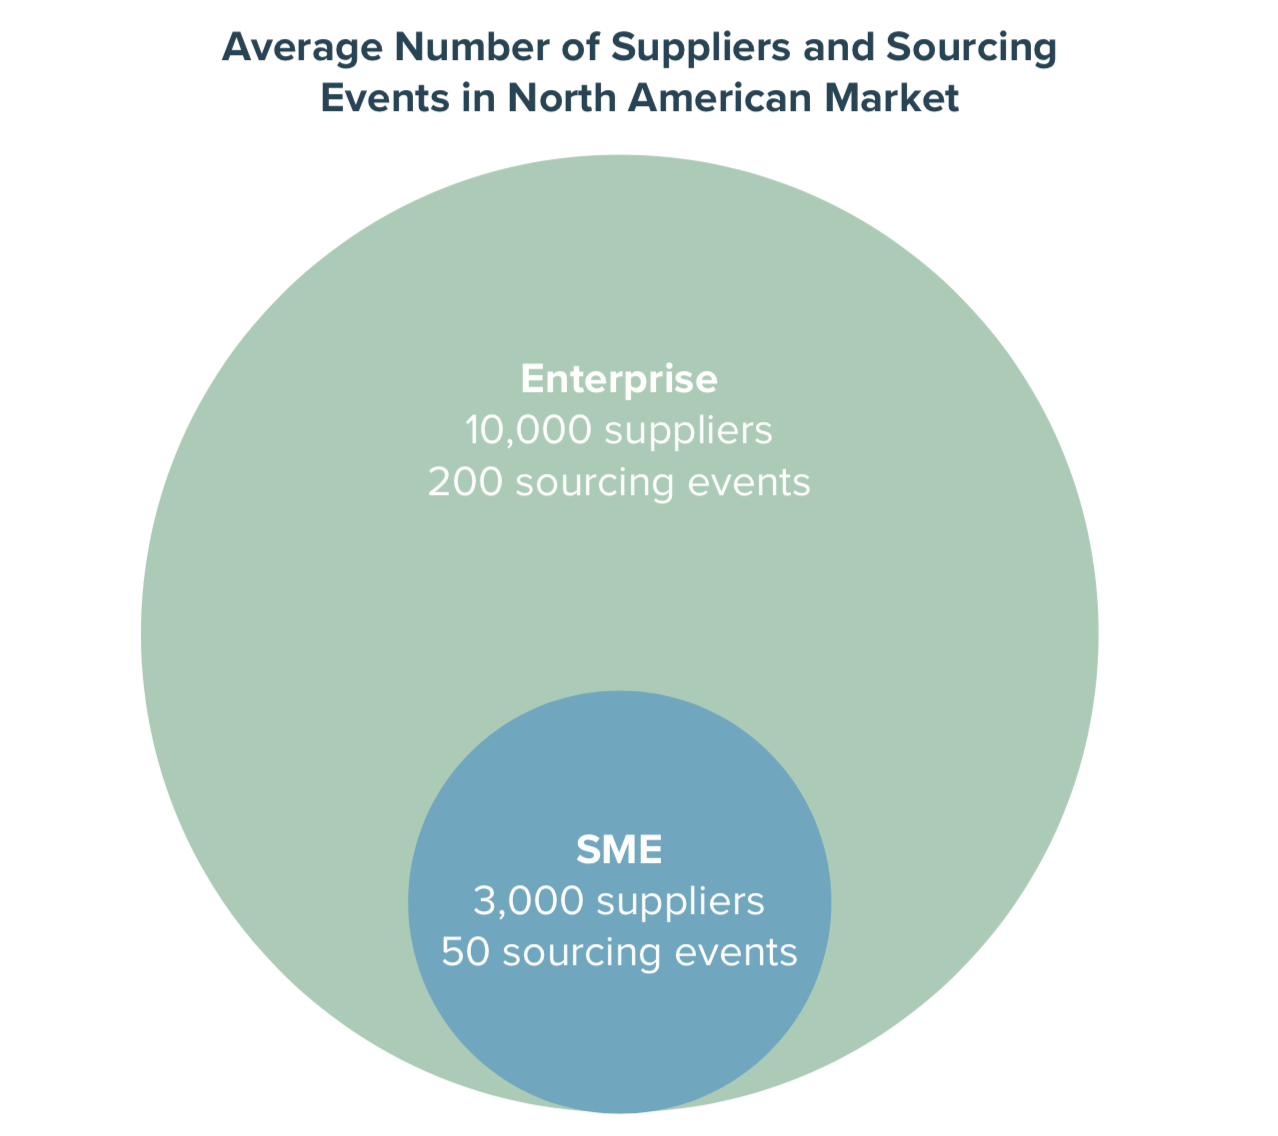 Average Number of Suppliers and Sourcing Events in North American Market